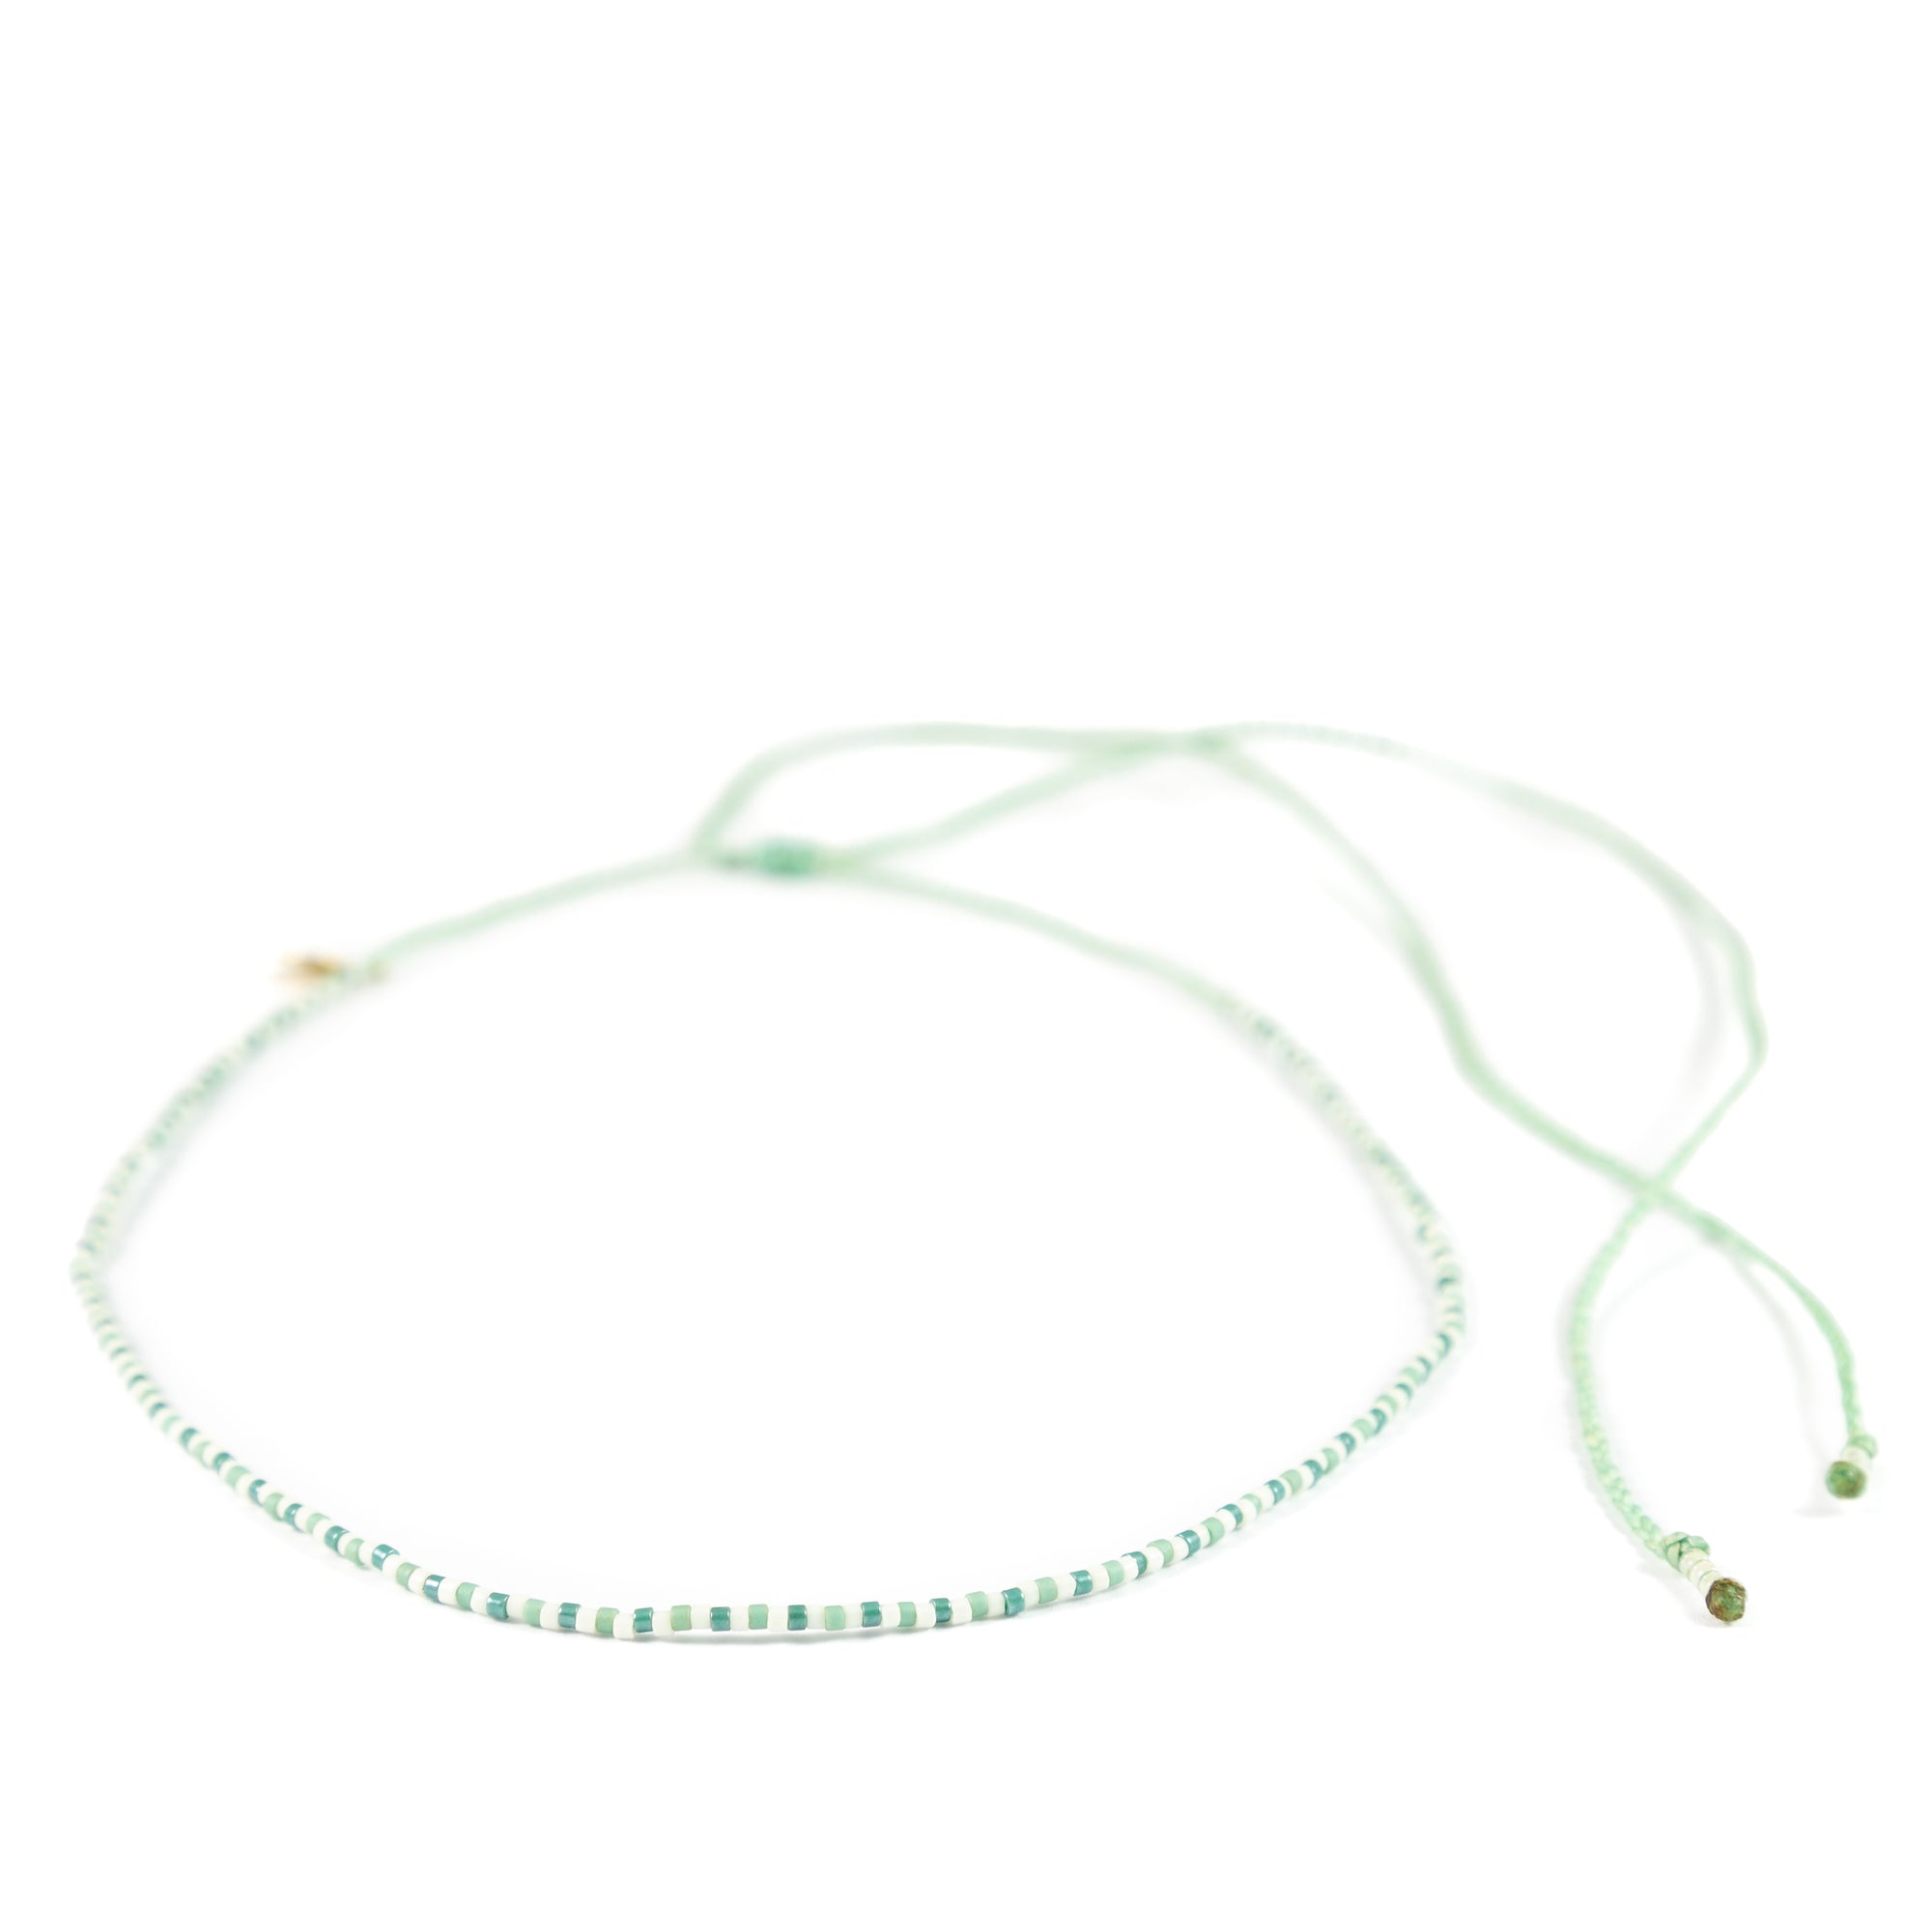 Cucumber & Secret Garden Two Color Alternating Mermaid Necklace